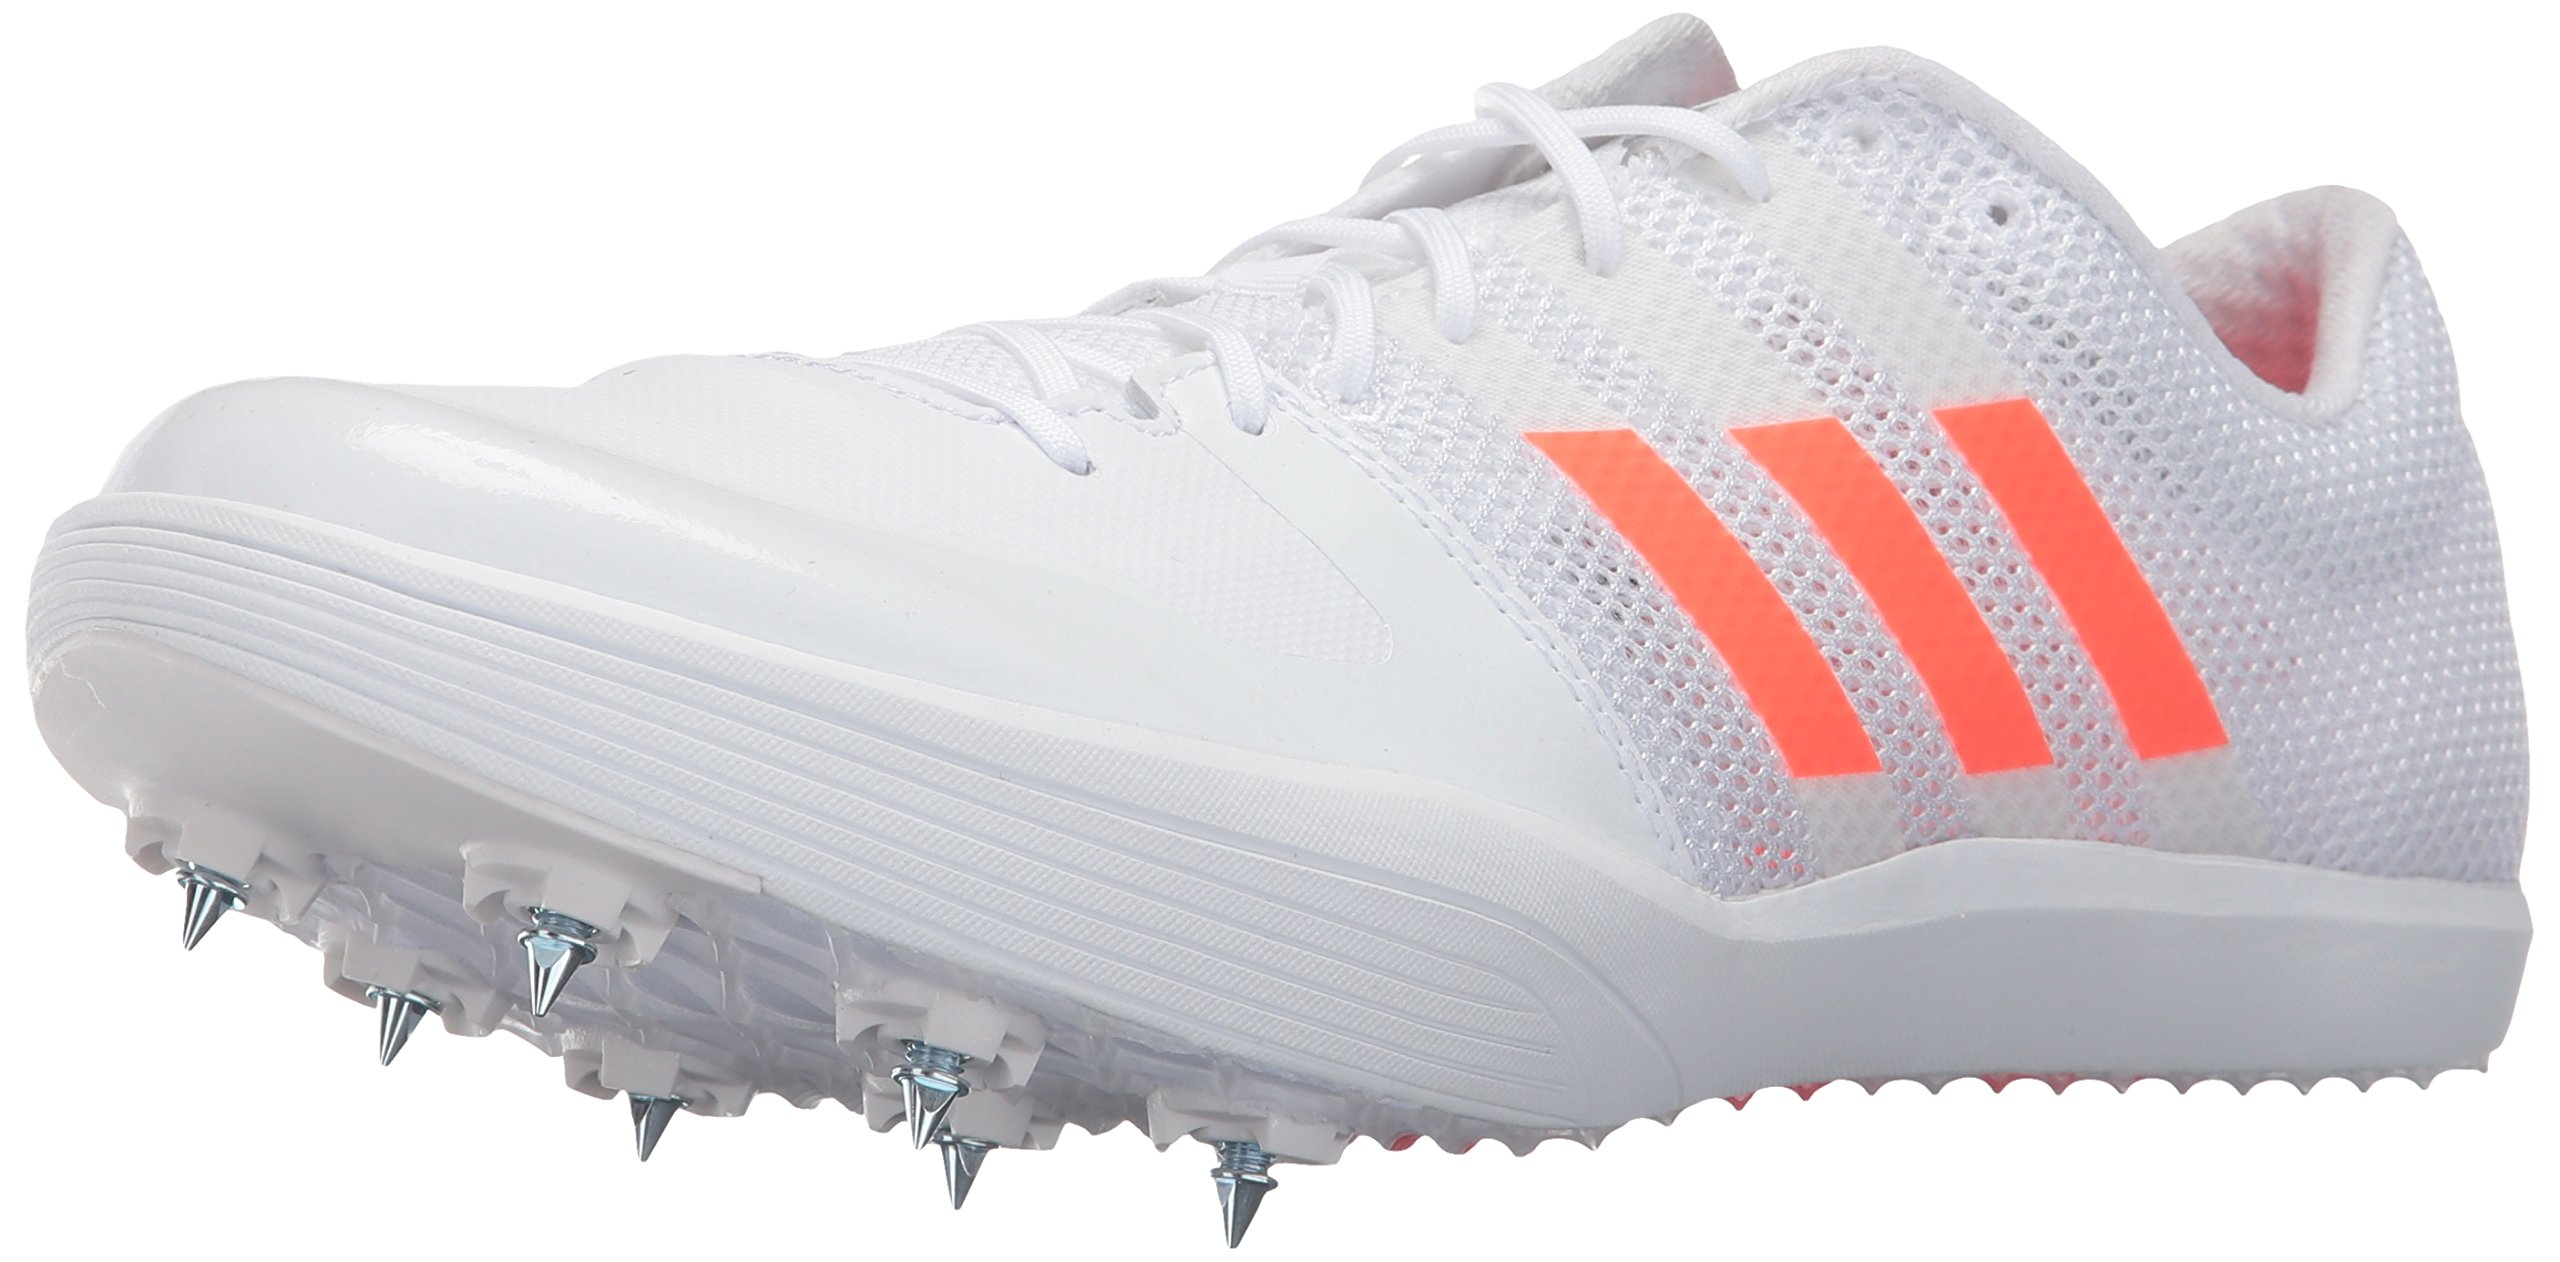 adidas Originals Adizero LJ Track Shoe, White/Solar Red/Metallic Silver, 13 M US by adidas Originals